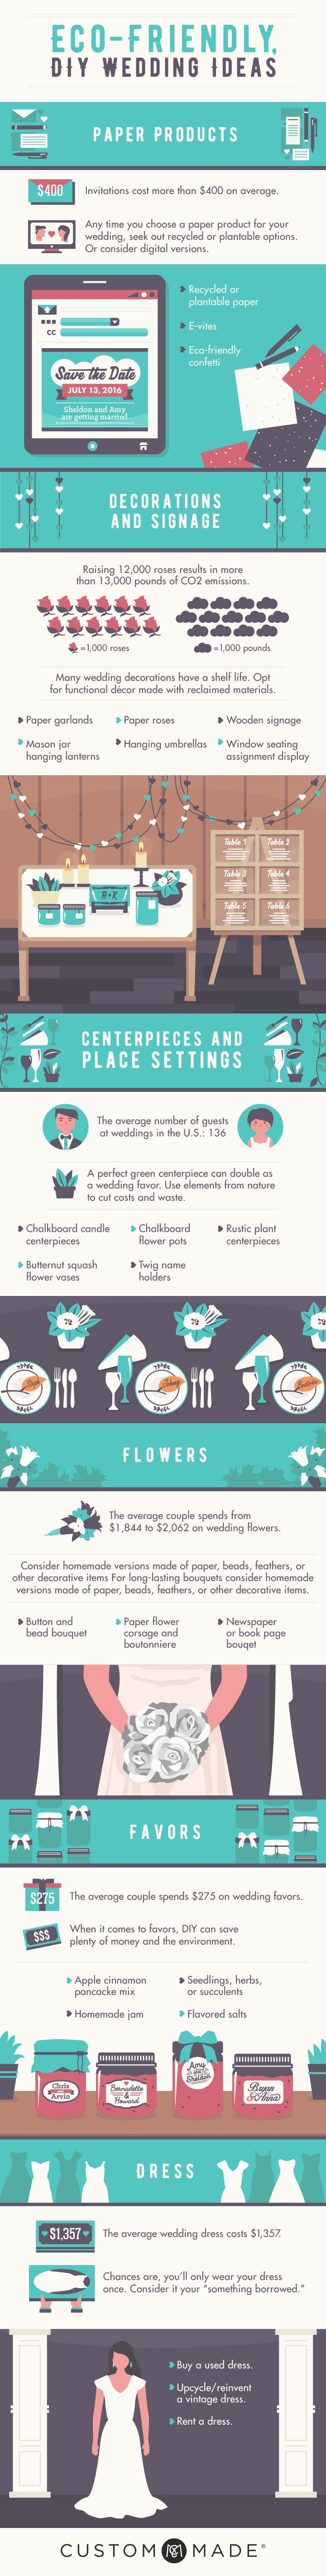 24 Eco-Friendly, DIY Wedding Ideas. Click here to see more: www.mydreamlines....